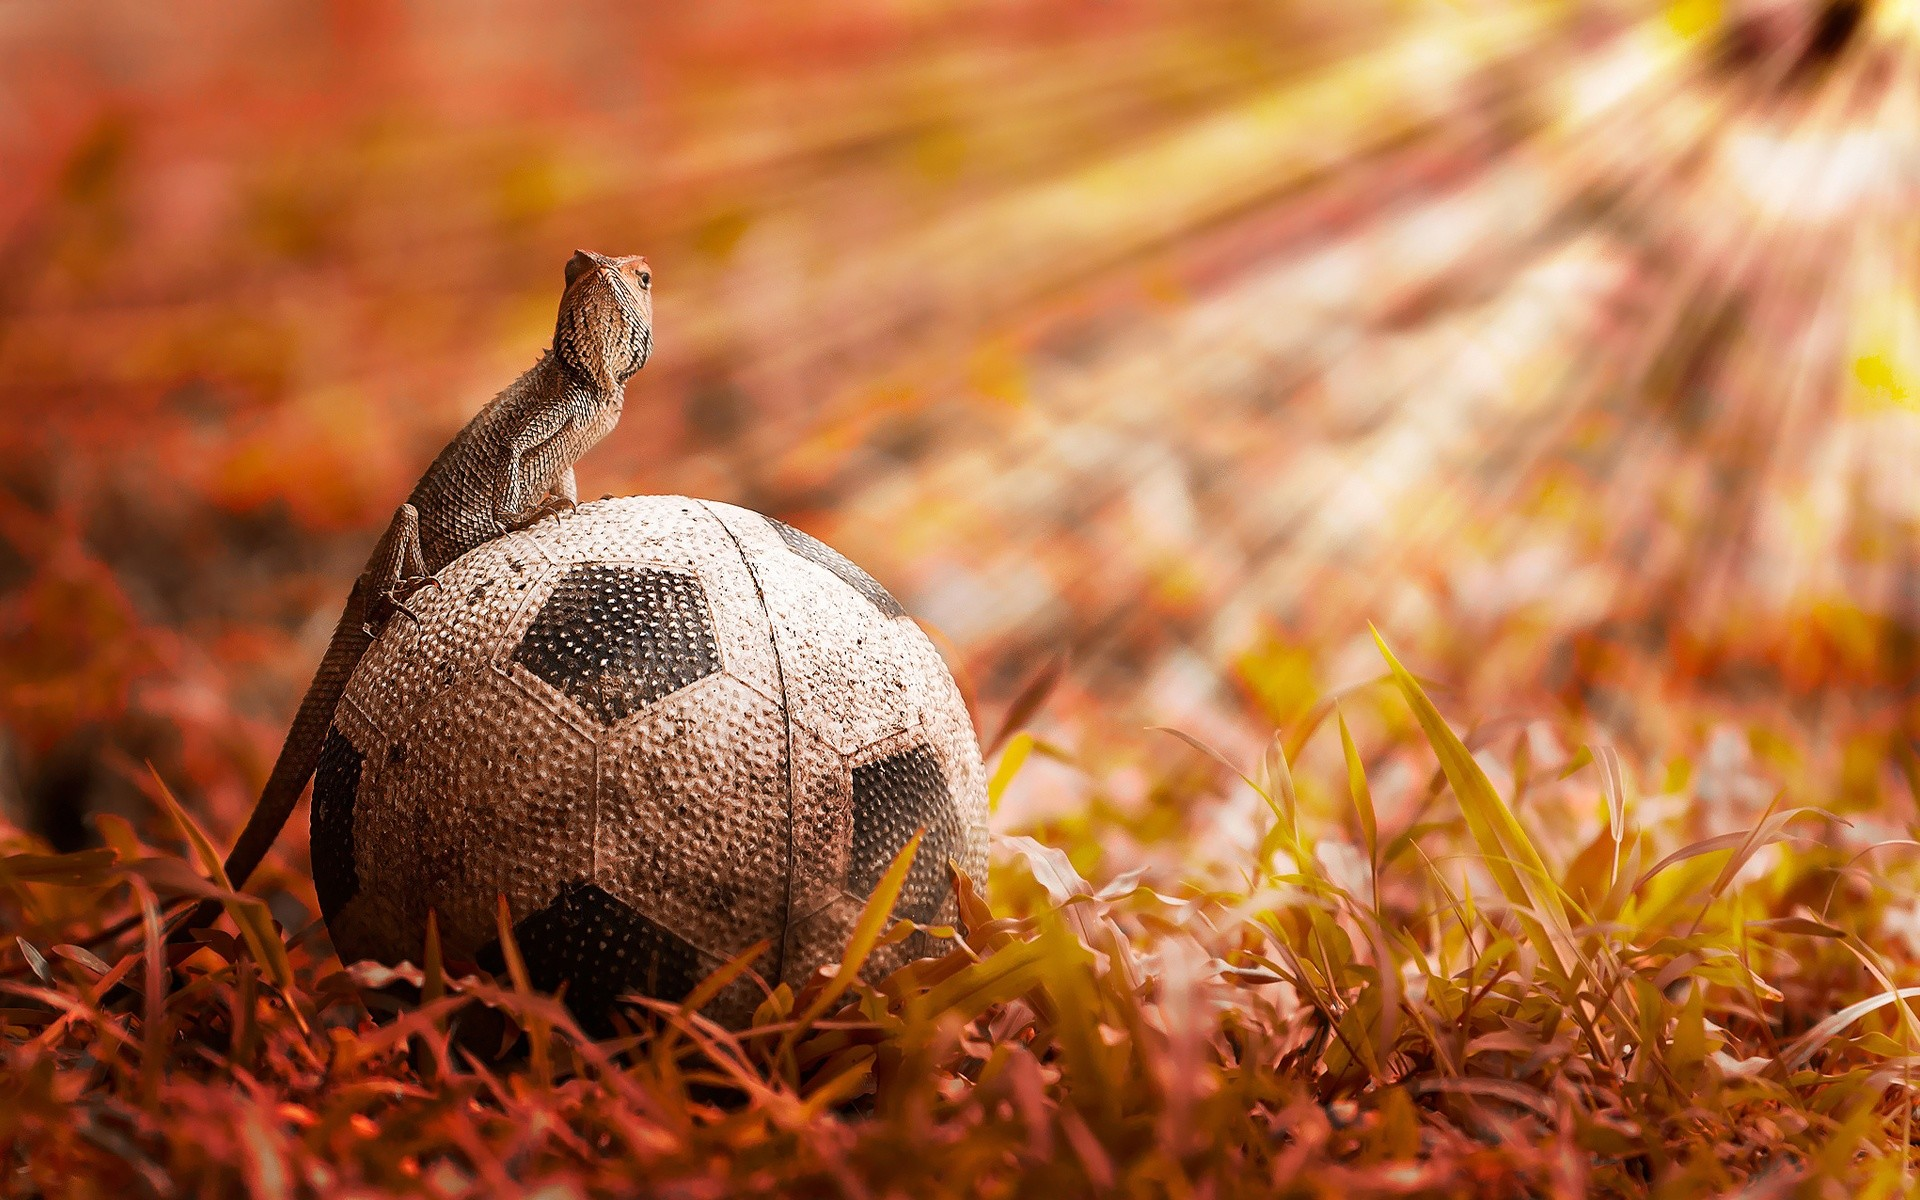 Download and View Full Size Photo. This Chameleon Sitting Over Soccer Ball  …